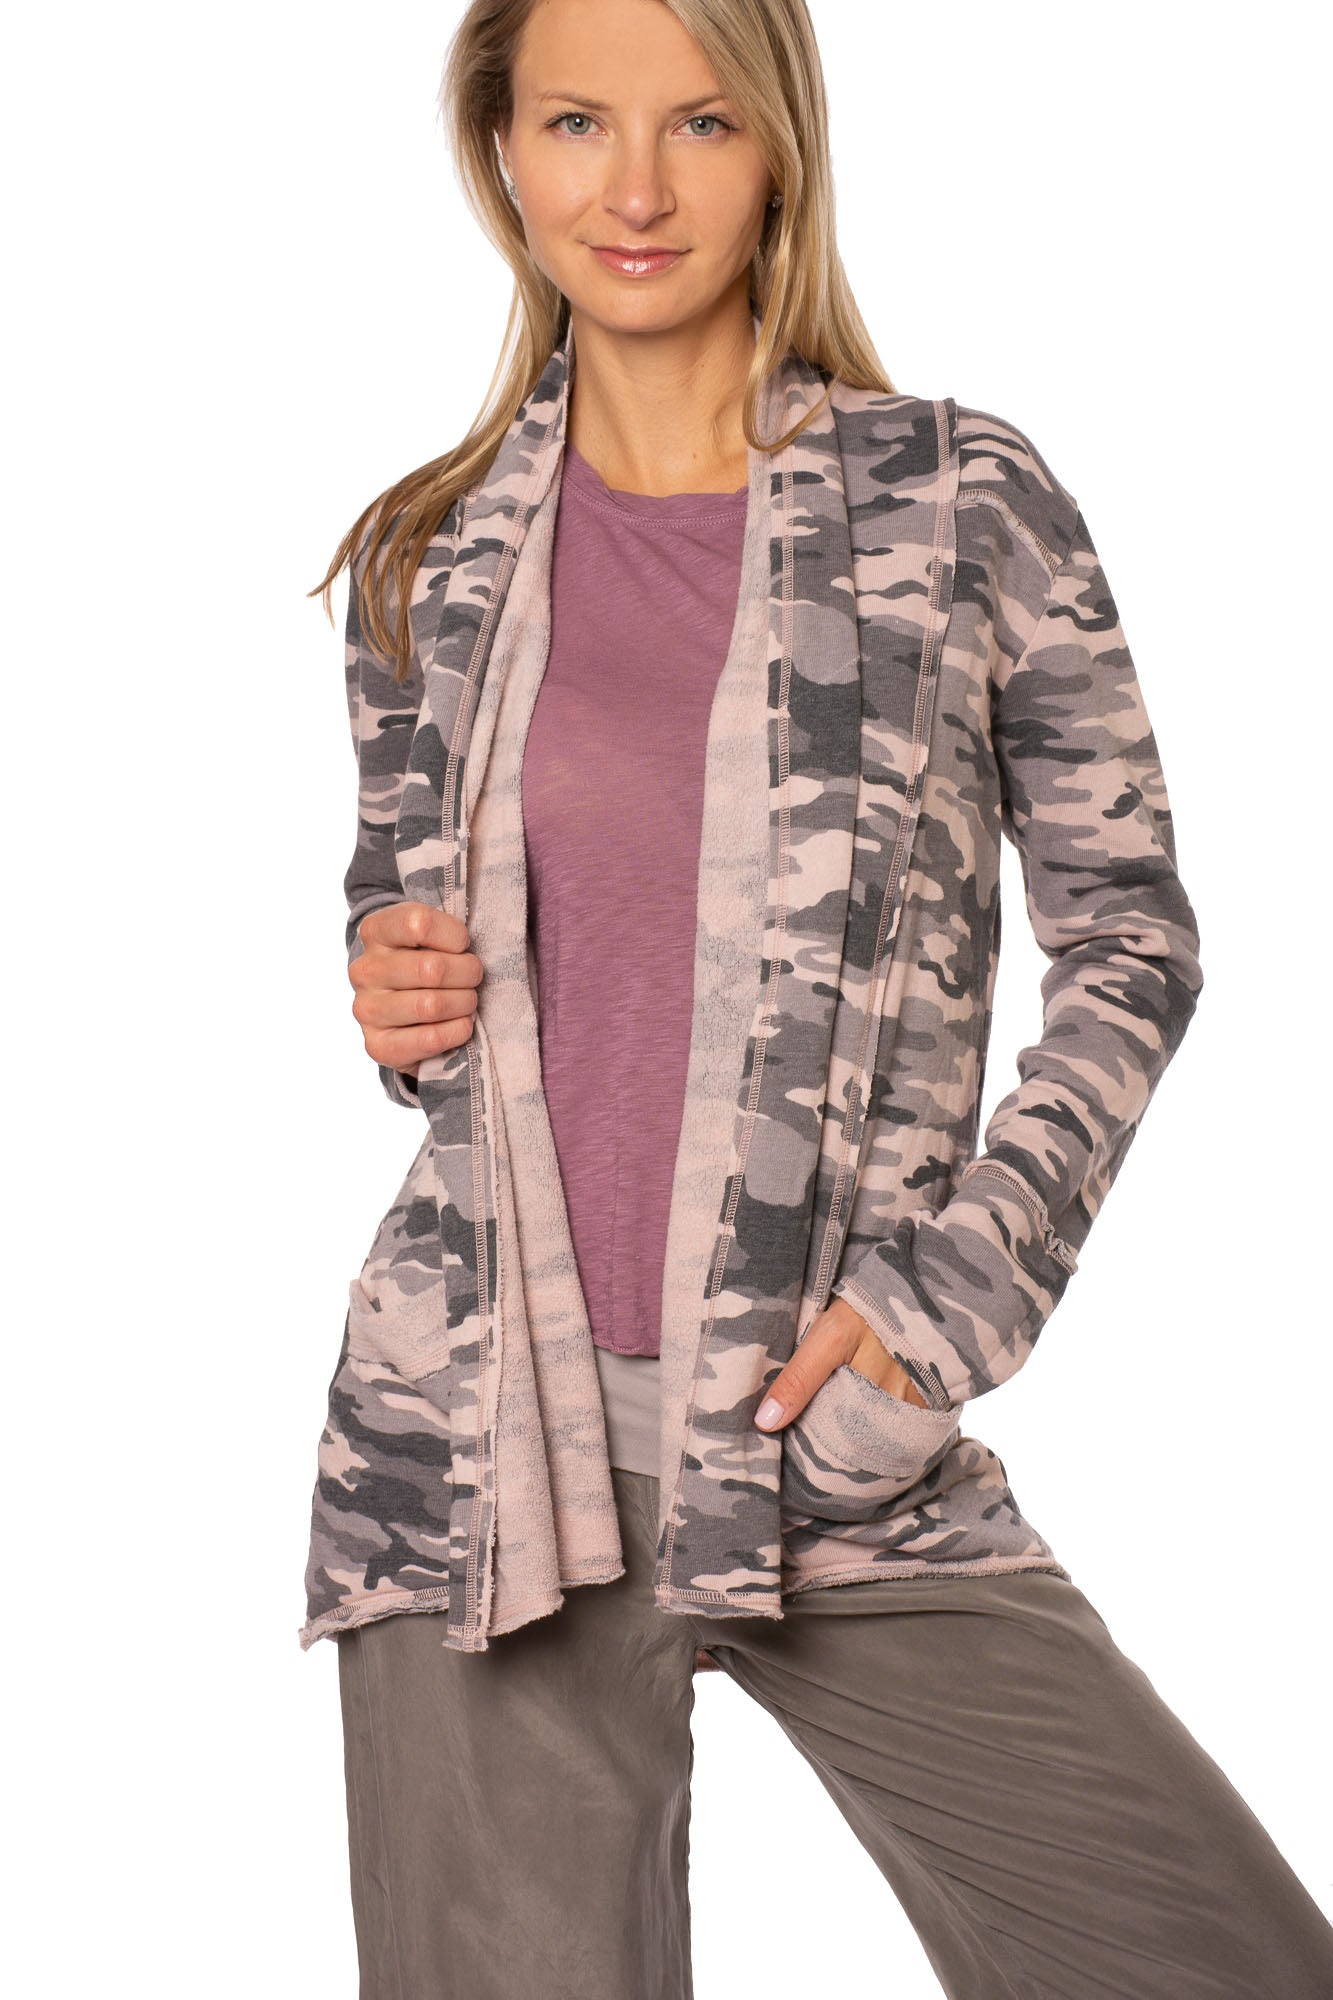 Hard Tail Forever - Camo Tri Blend Slouchy Cardigan (CAMF-06, Rose Camo)